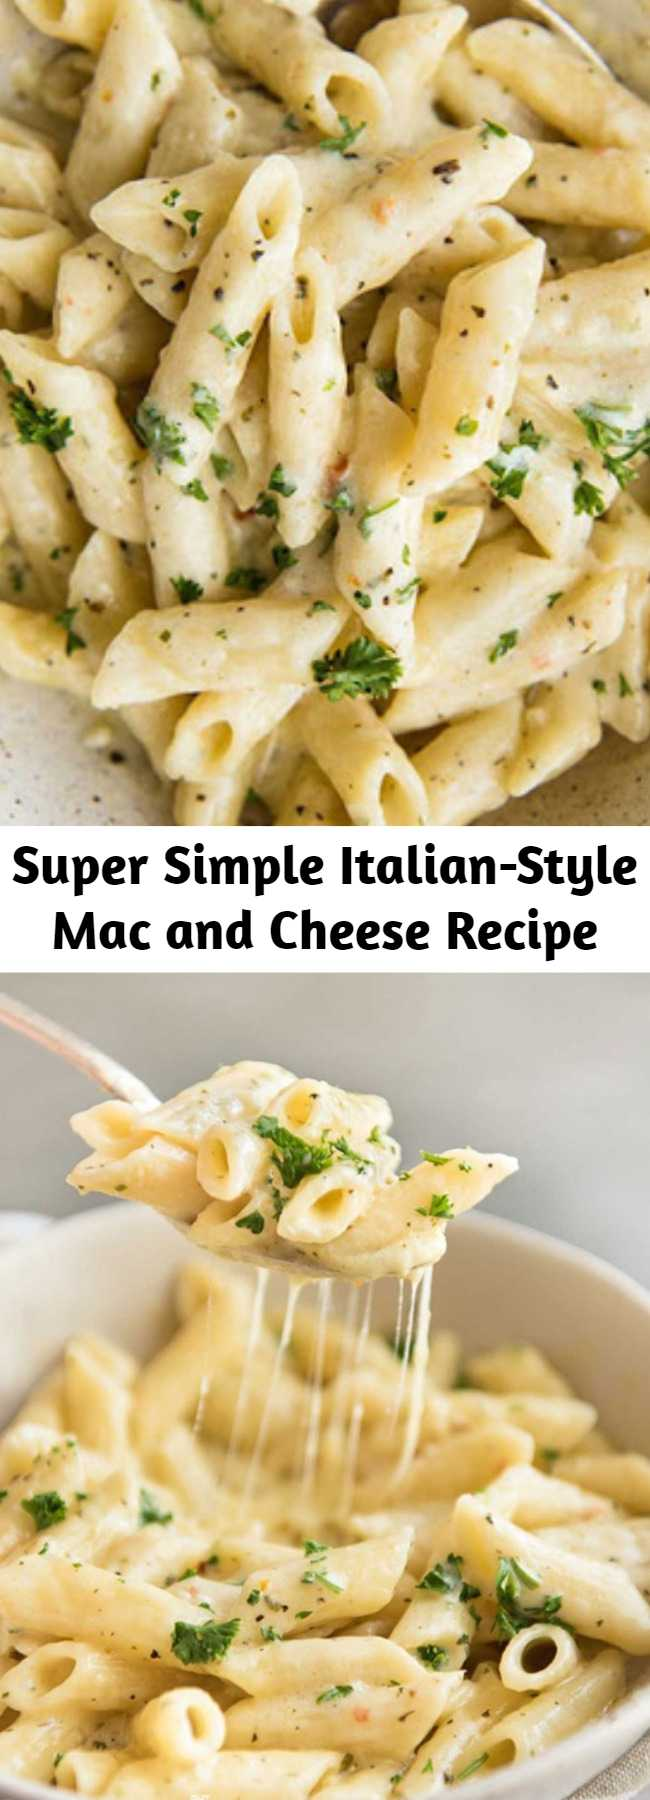 Super Simple Italian-Style Mac and Cheese Recipe - Super Simple Mac & Cheese Italian Style is a go to recipe around here. With just 7 ingredients and 15 minutes you can have this fantastic dinner on the table. It is the ultimate left-over and weeknight dinner helper. #MacAndCheese #SimpleDinner